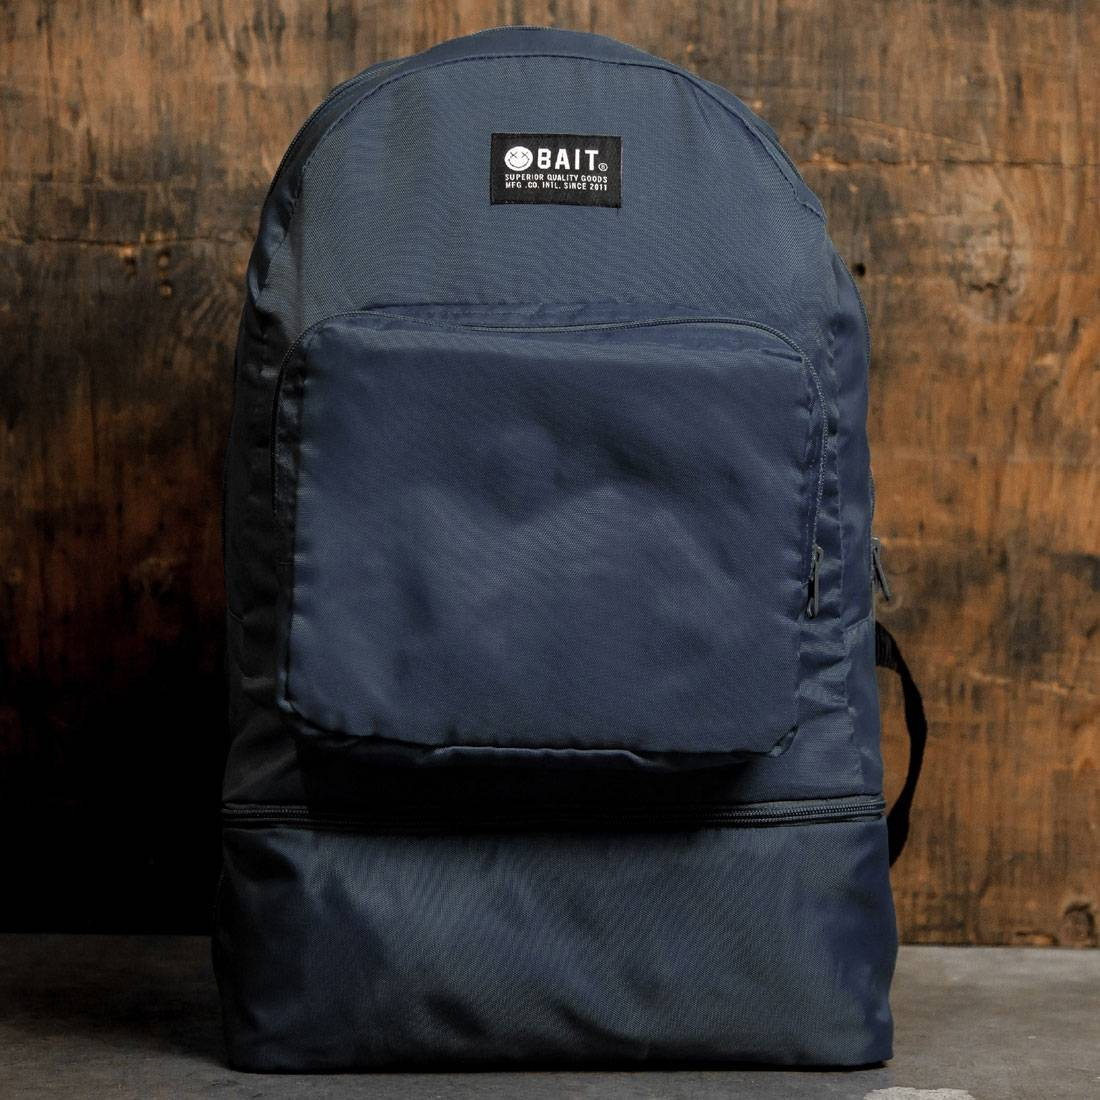 BAIT Lightweight Packable And Detachable Sneaker Nylon Backpack (navy)